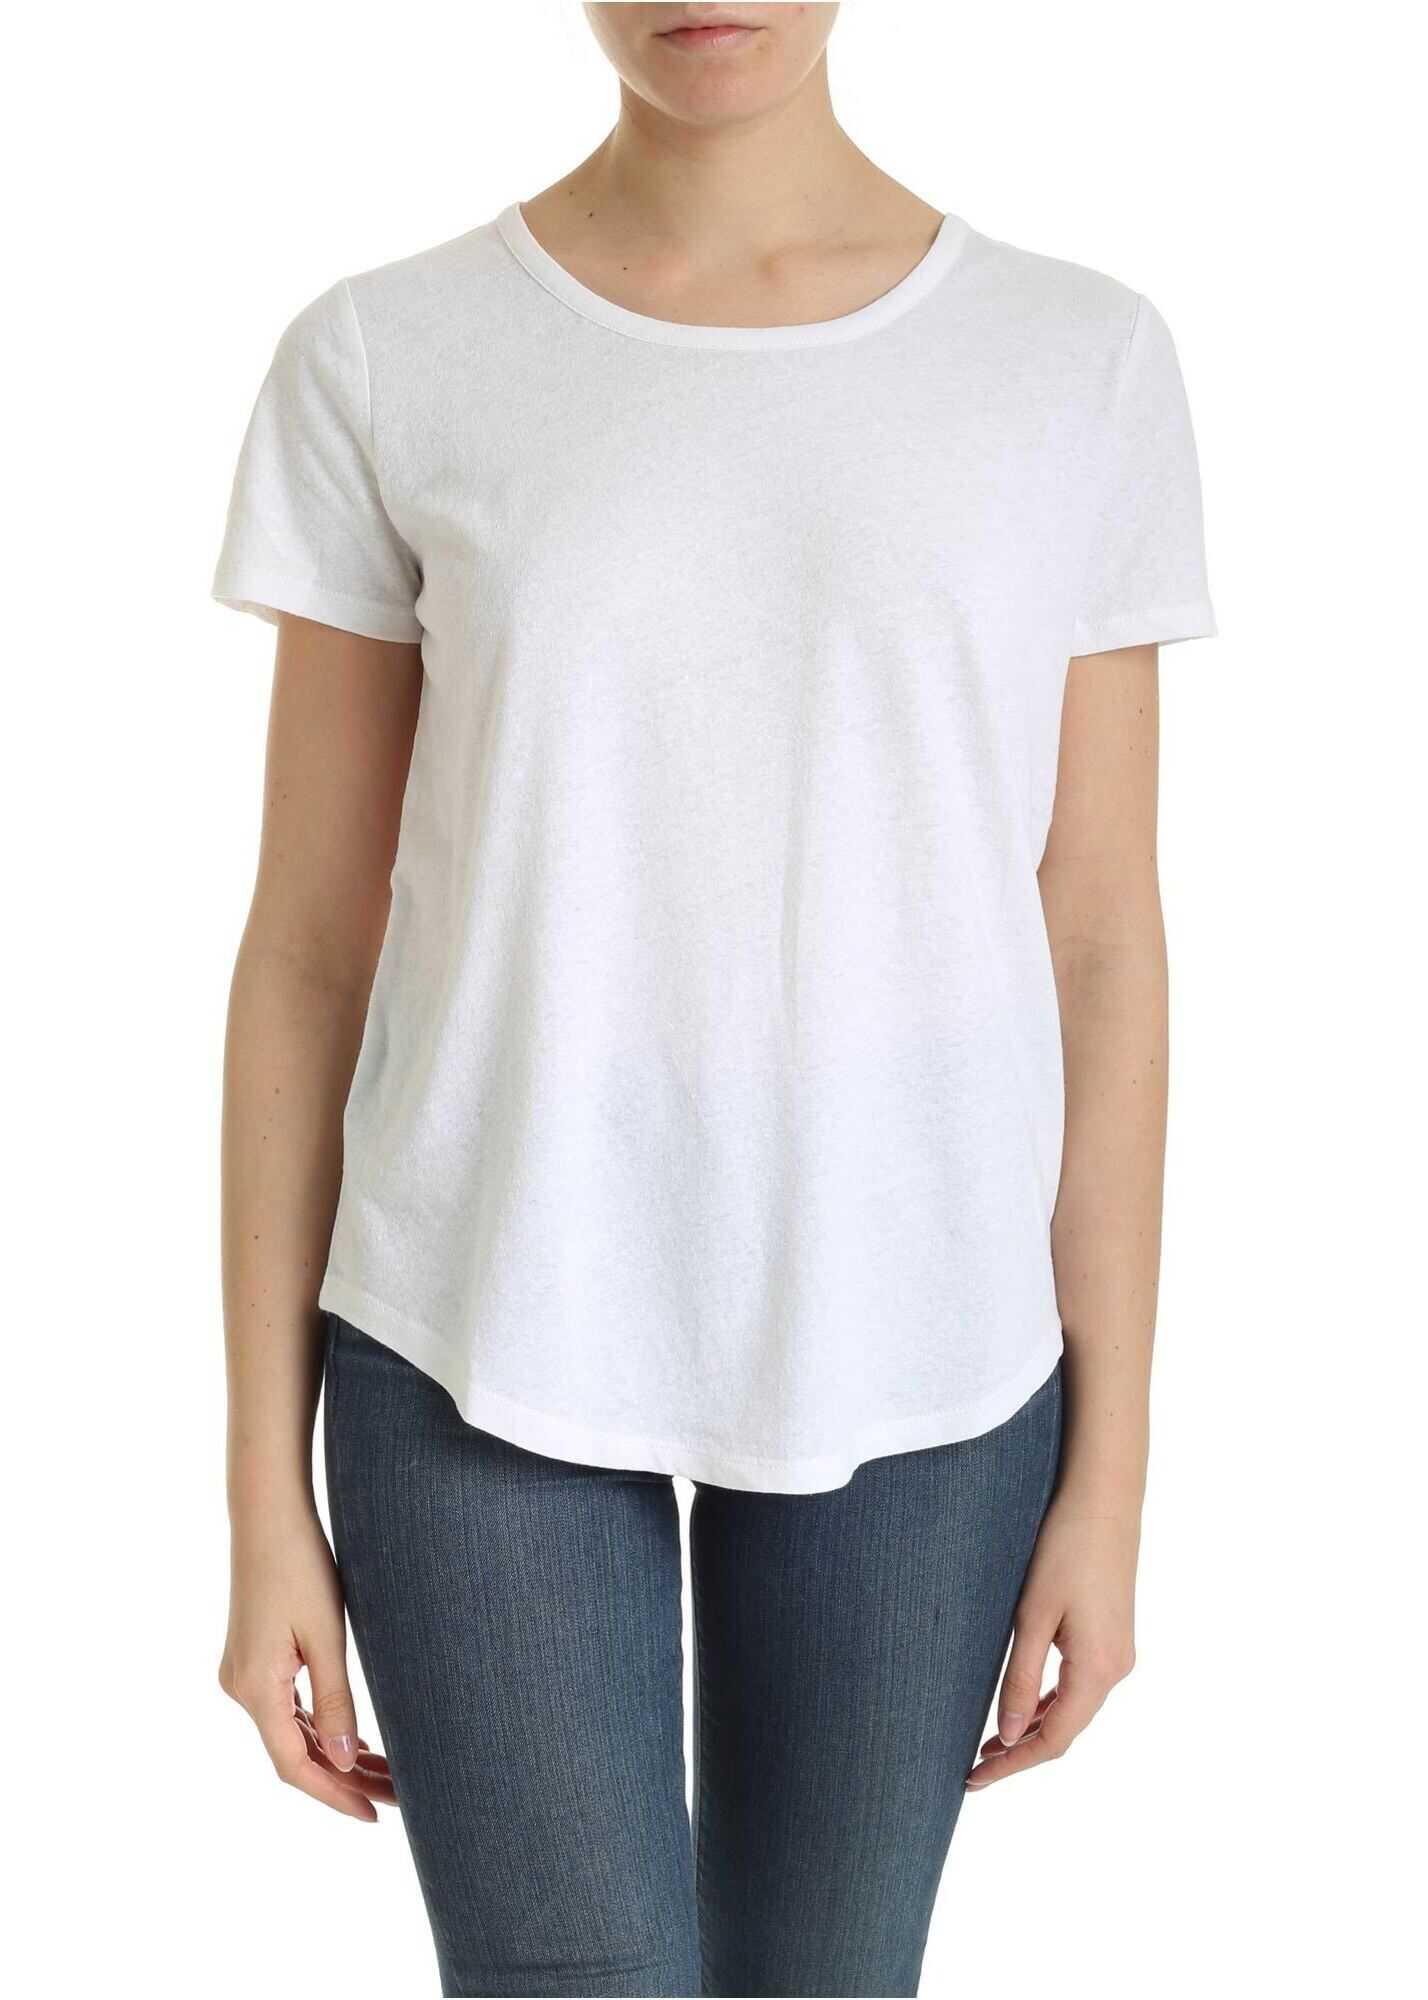 Michael Kors Linen And Cotton T-Shirt In White White